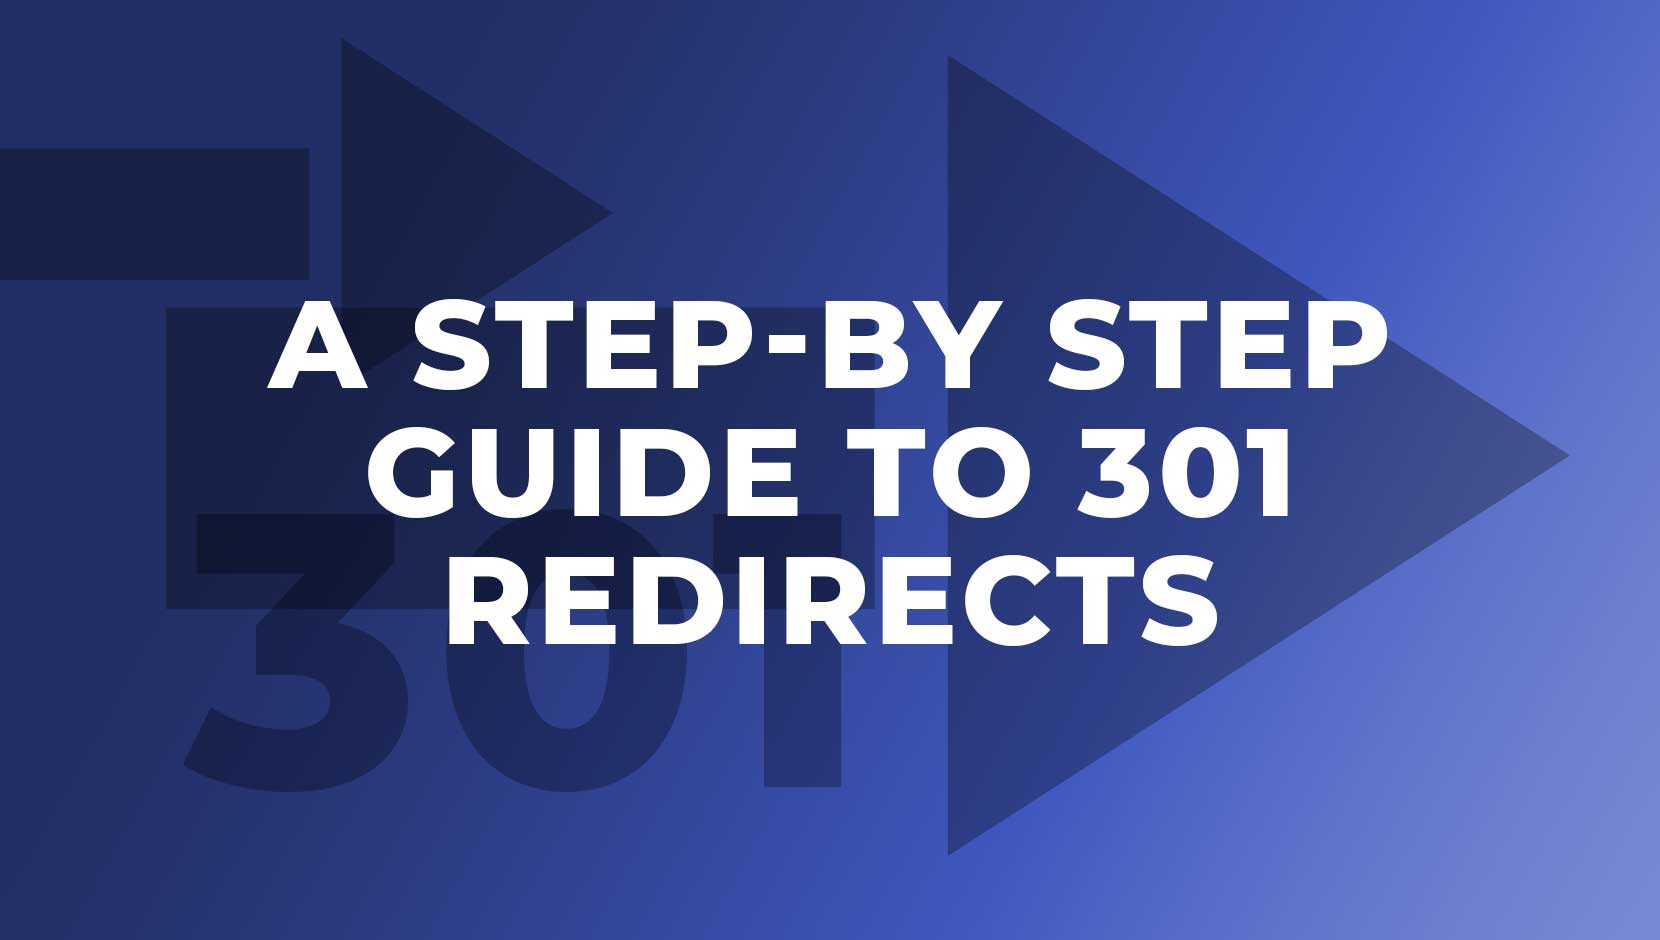 A Step By Step Guide To 301 Redirects